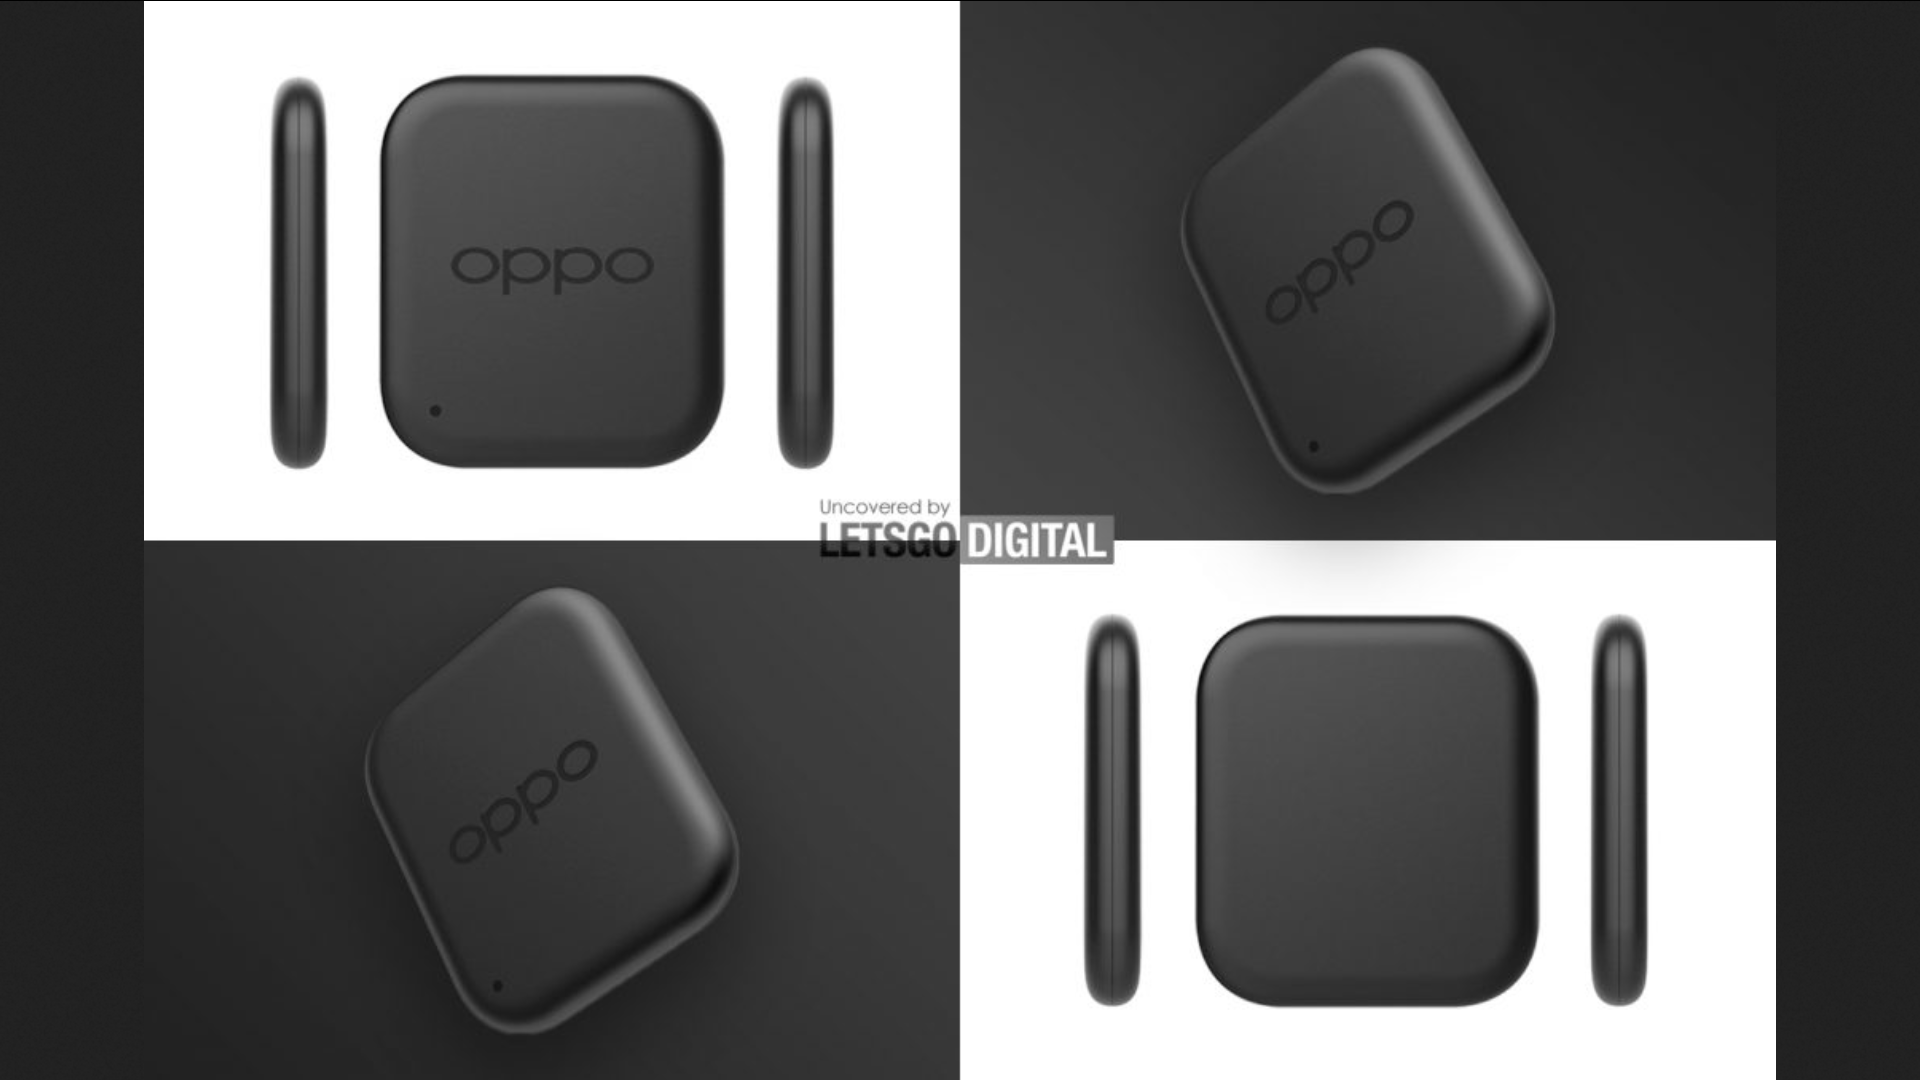 OPPO patents its answer to the Samsung Galaxy SmartTag or Apple AirTag